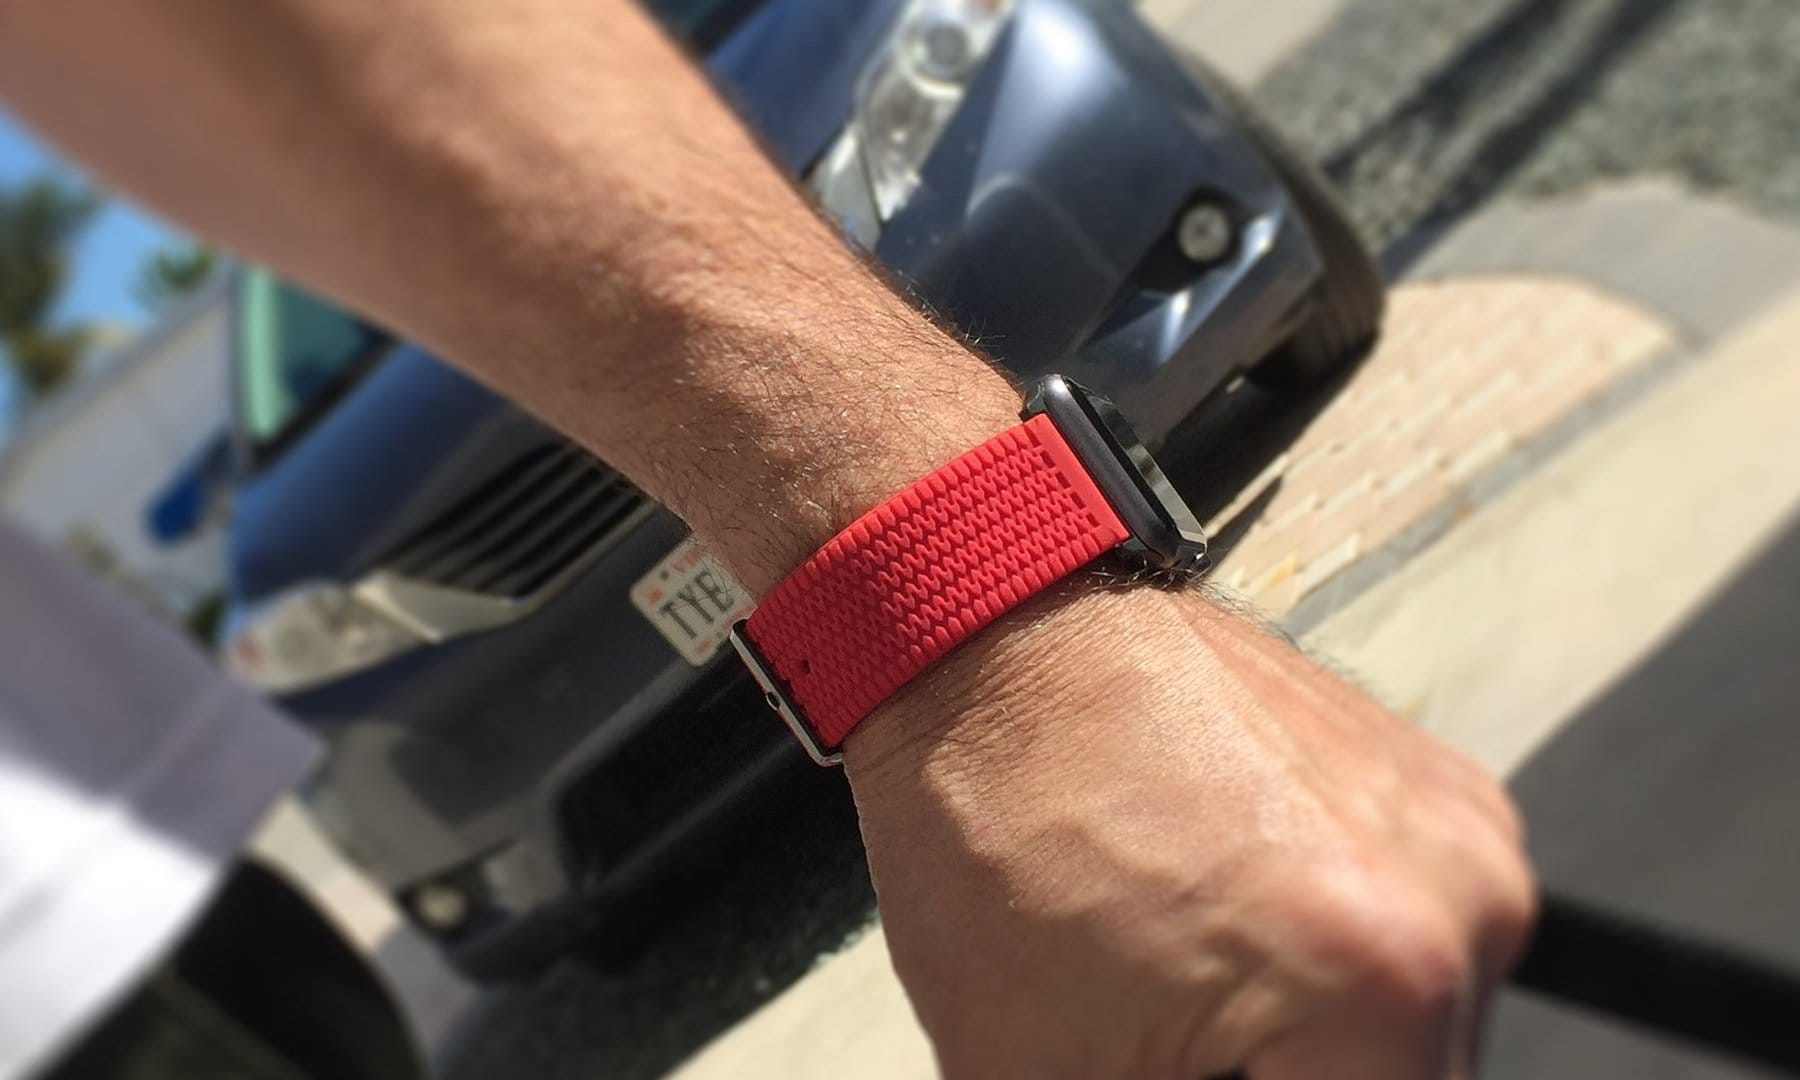 Carterjett bands for Apple Watch.